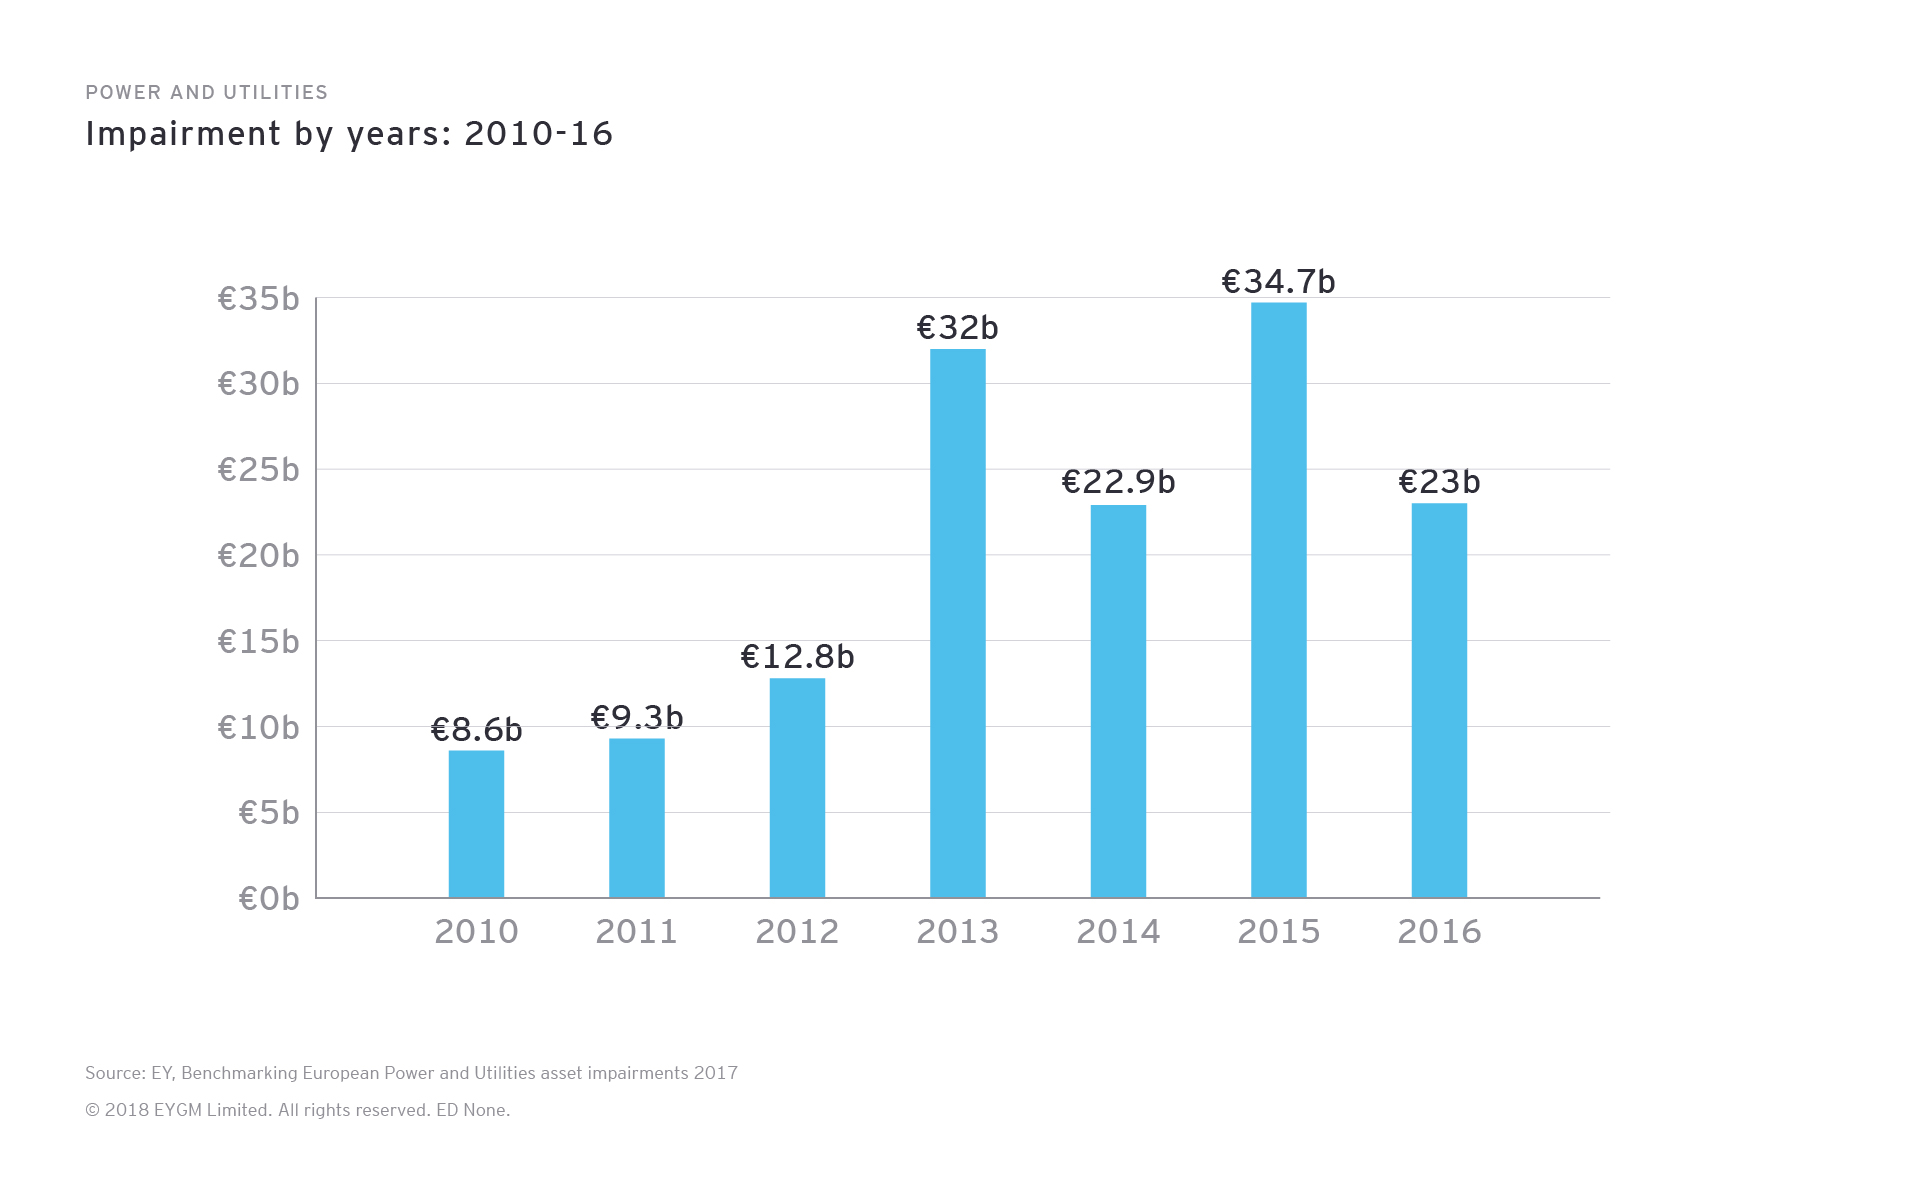 Power and Utilities. Impairment by year 2010-16